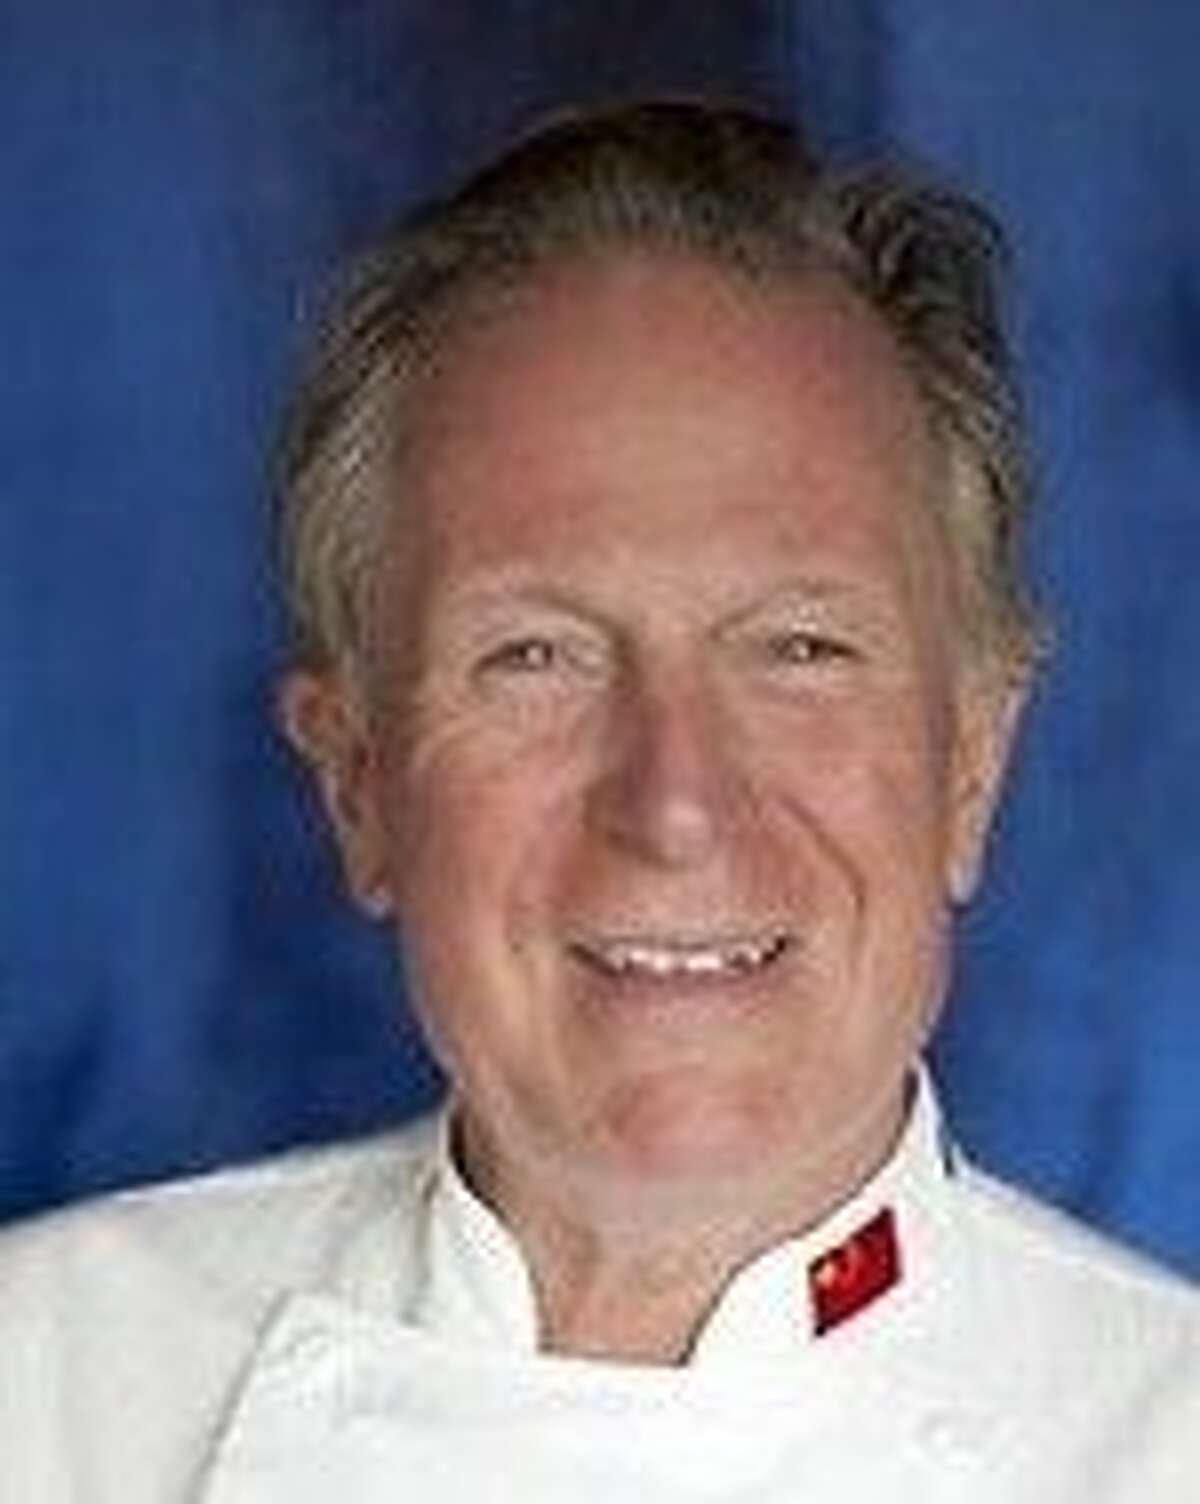 Jeremiah Tower now lives in Mexico, where he writes.